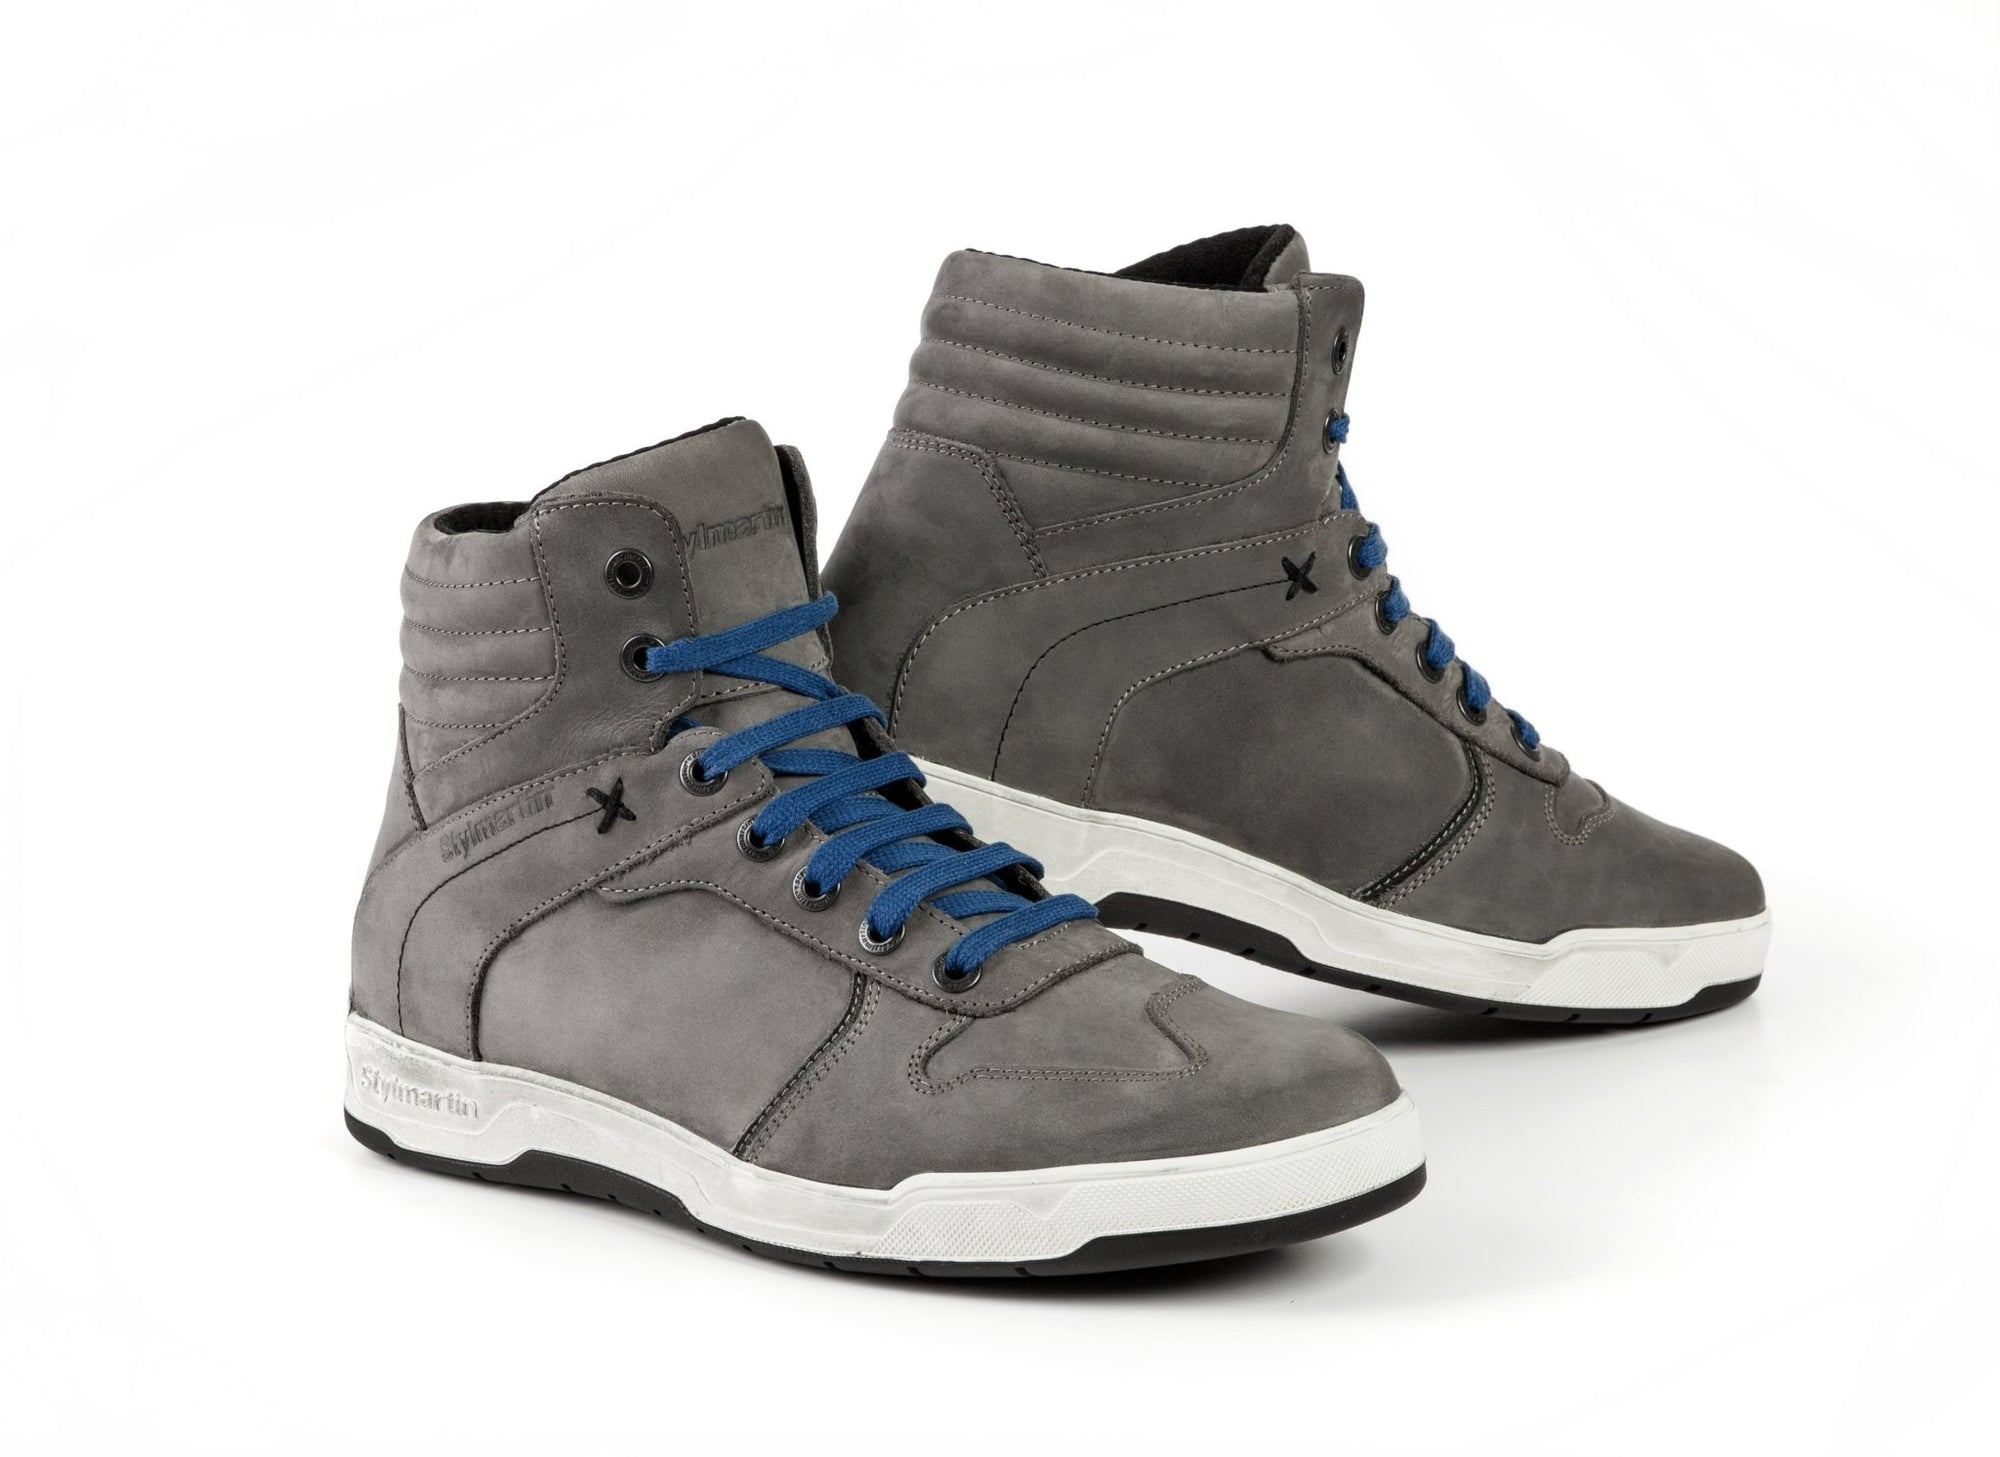 Stylmartin - Stylmartin Smoke WP Sneaker in Grey - Boots - Salt Flats Clothing